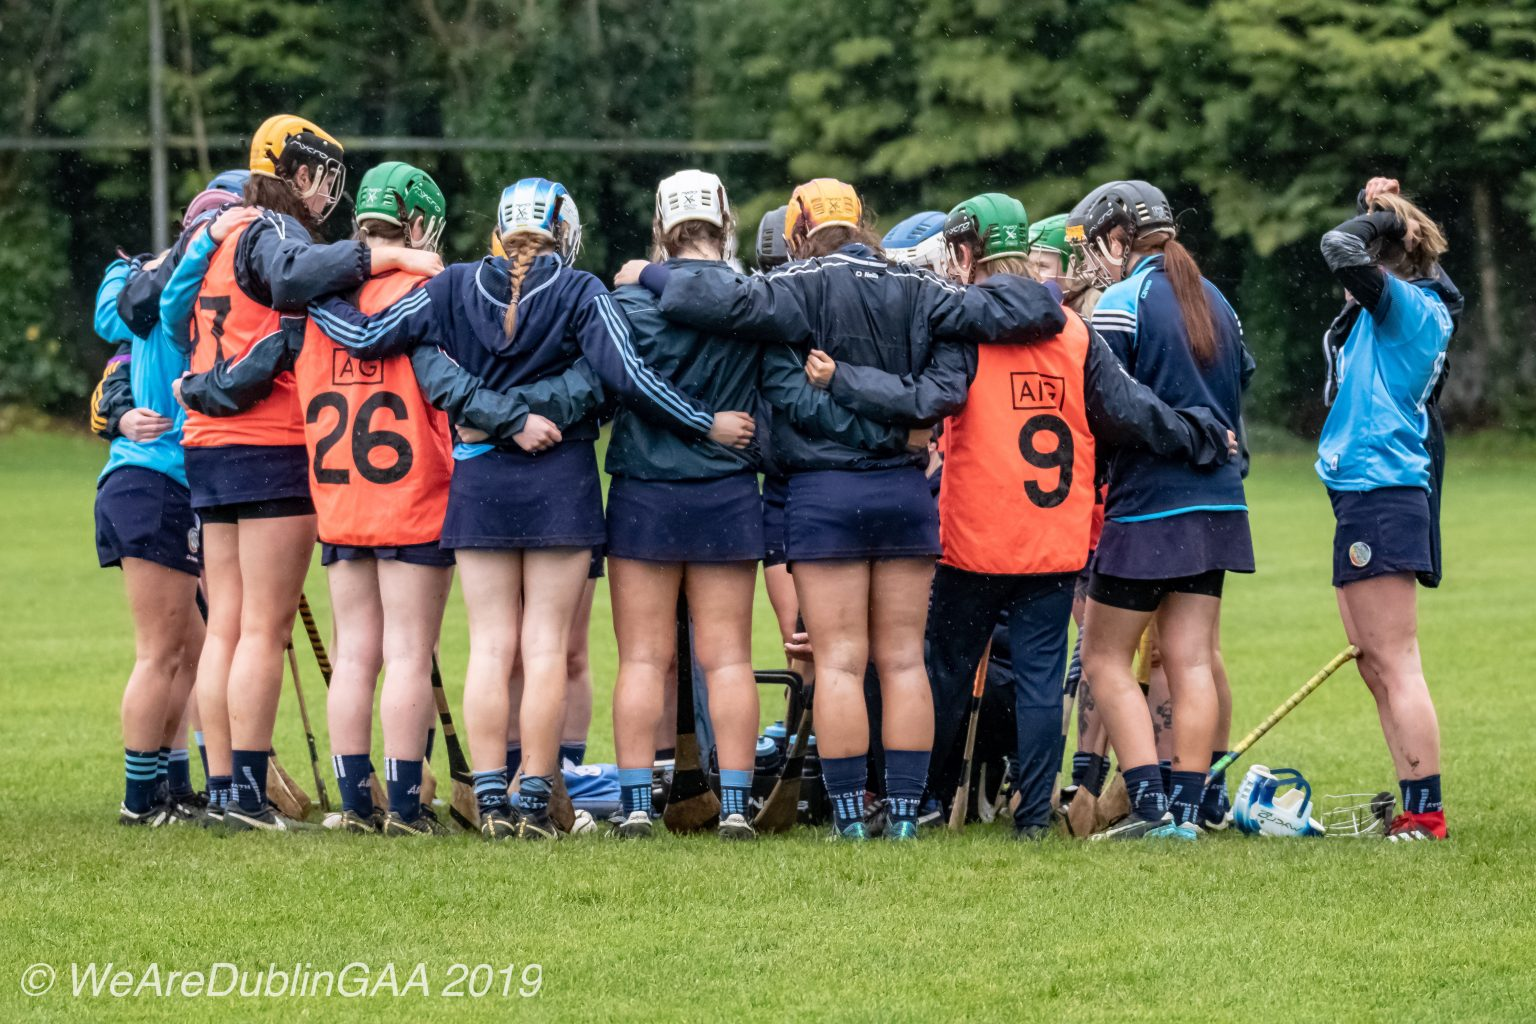 Dublin Intermediate Camogie Team In a huddle on the pitch before their Leinster Intermediate Camogie quarter final